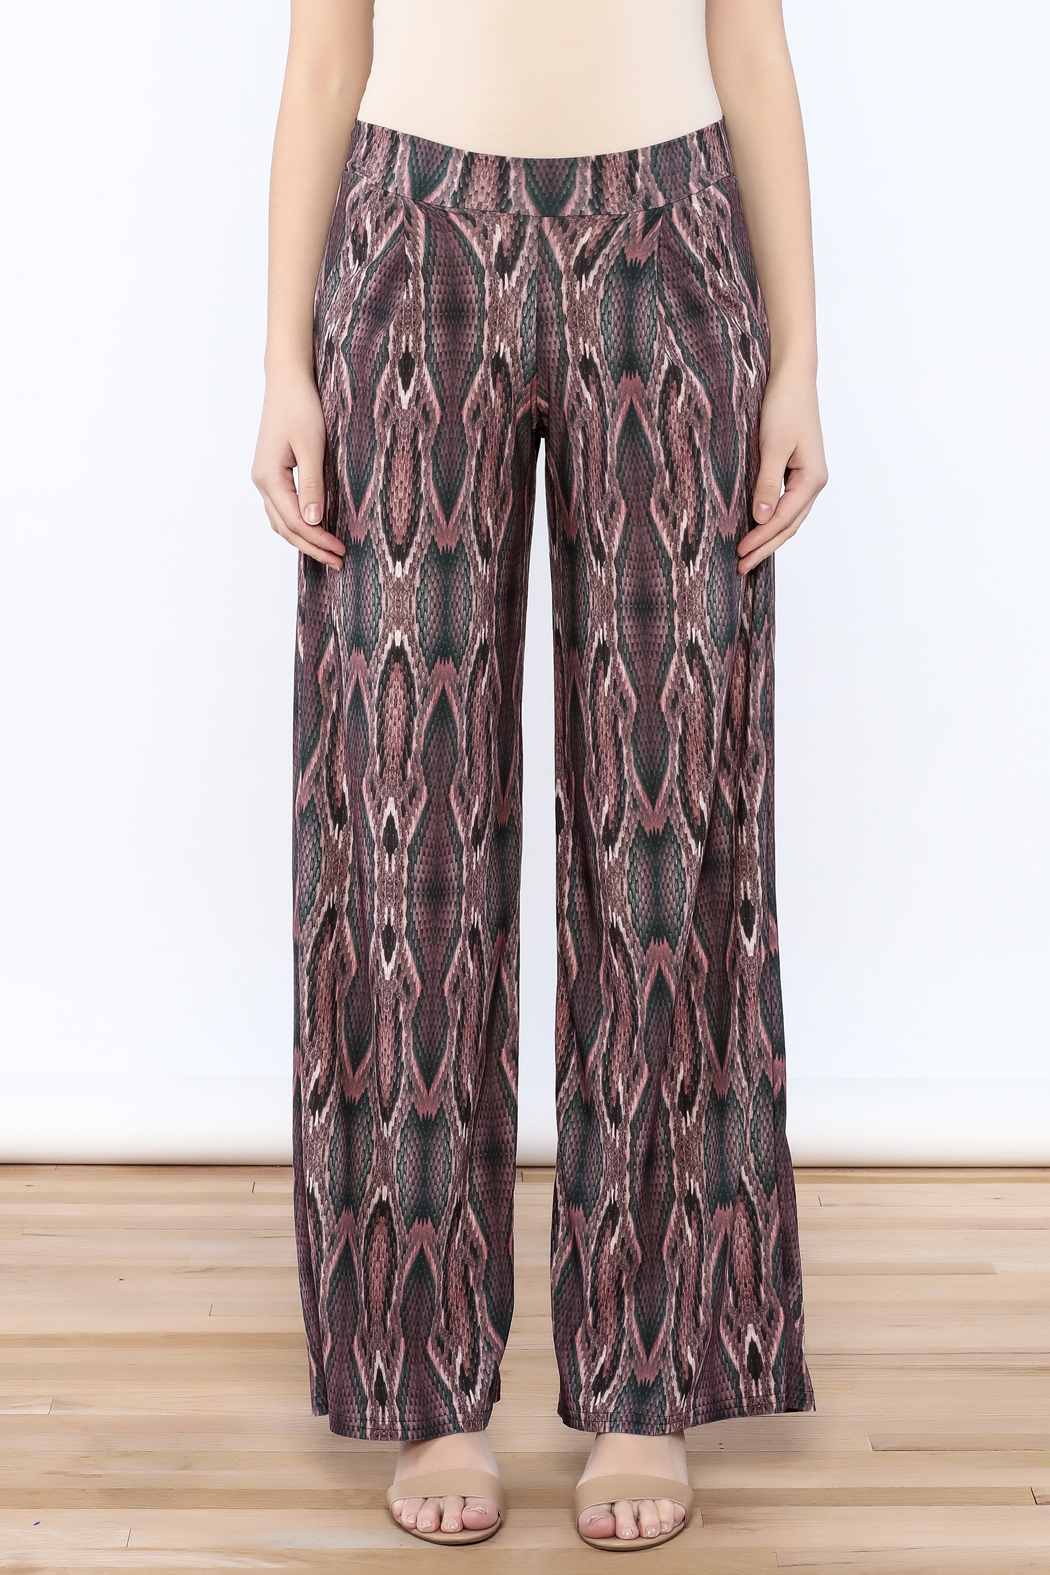 Viereck Quail Wide Leg Pant From Atlanta By Collage